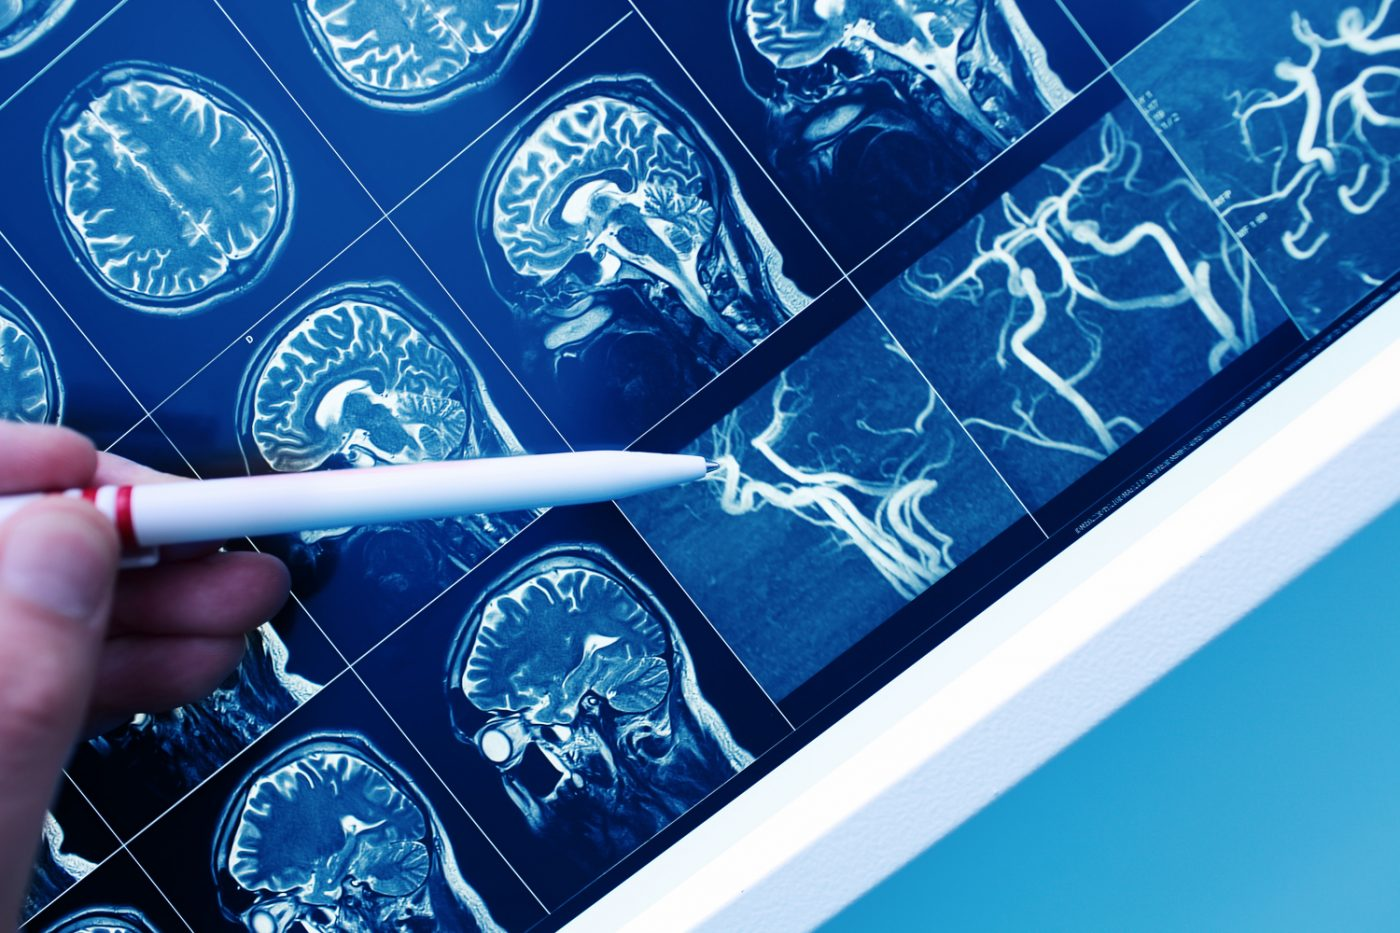 Doctor pointing with pen to the brain blood vessel on the MRI image.